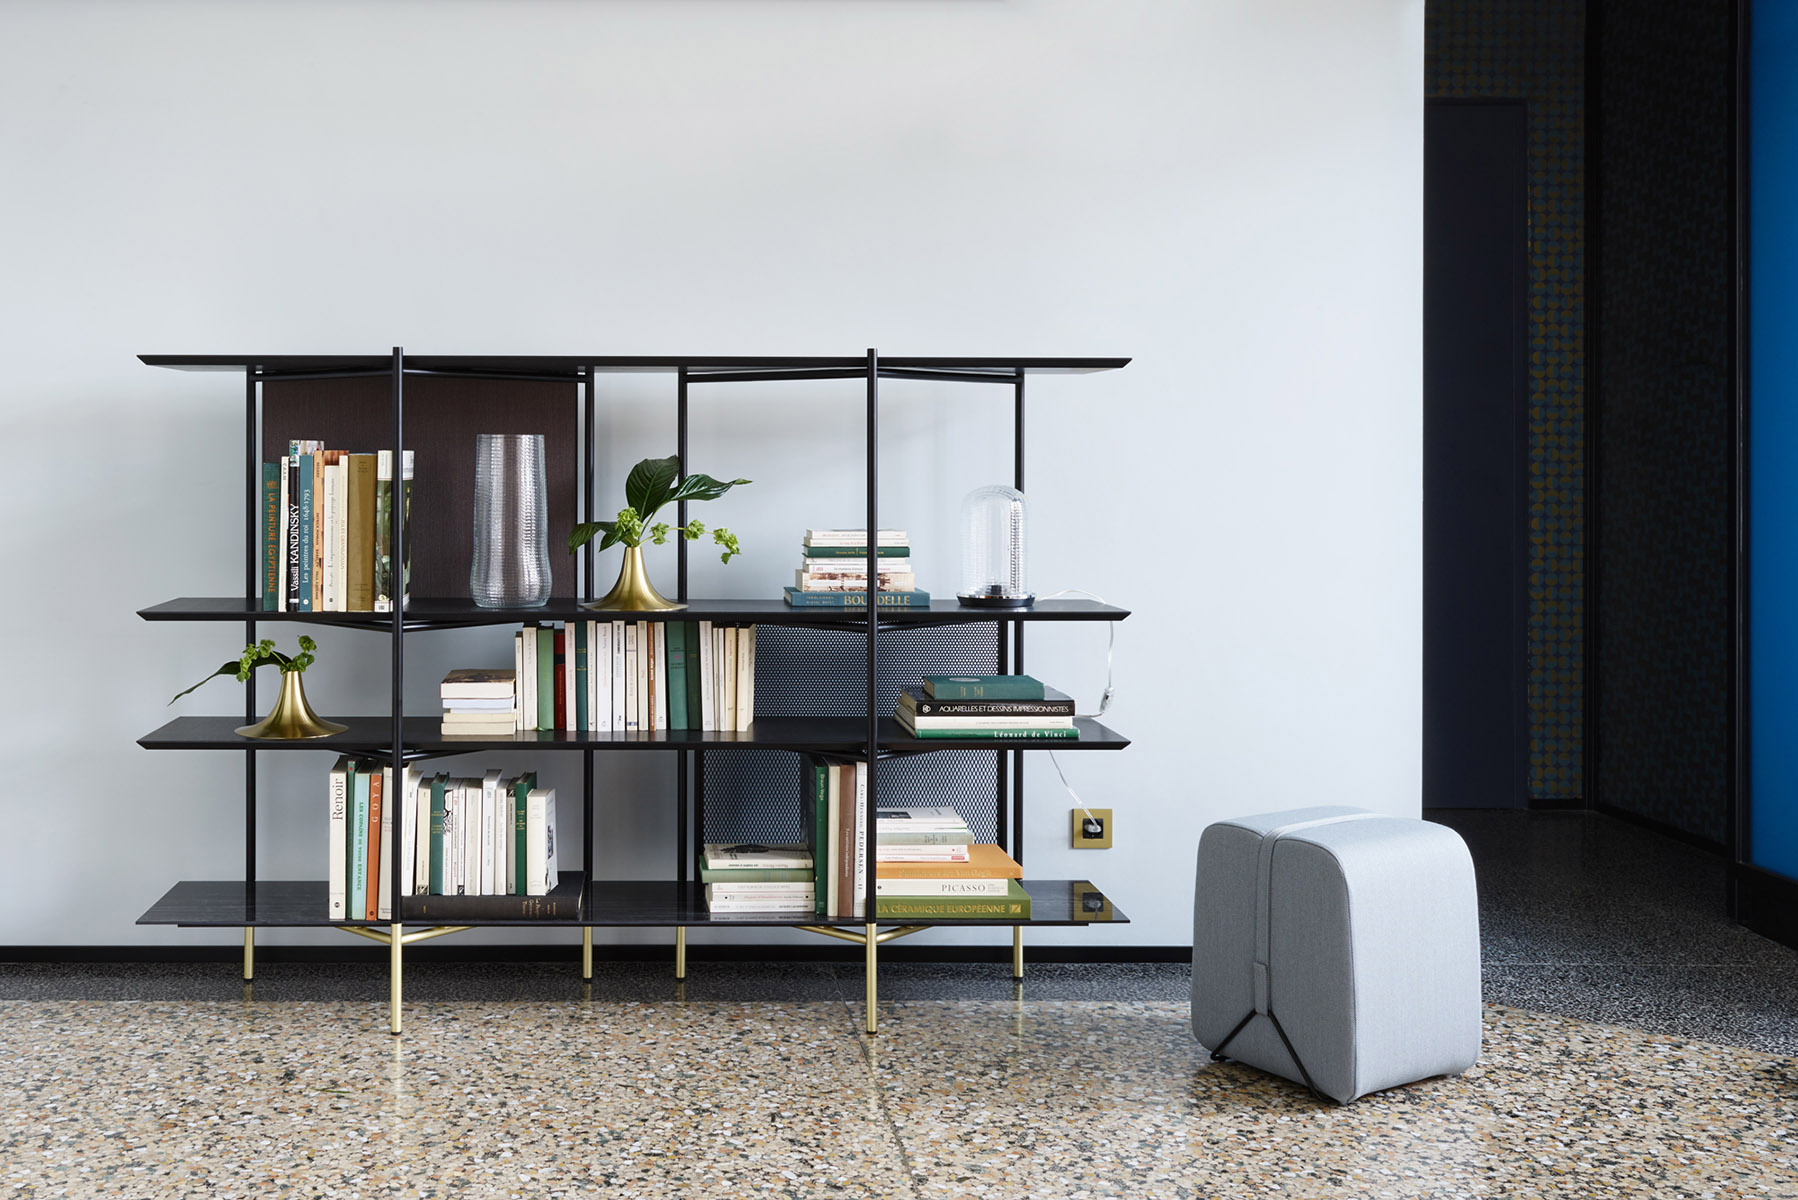 lemoine_int5